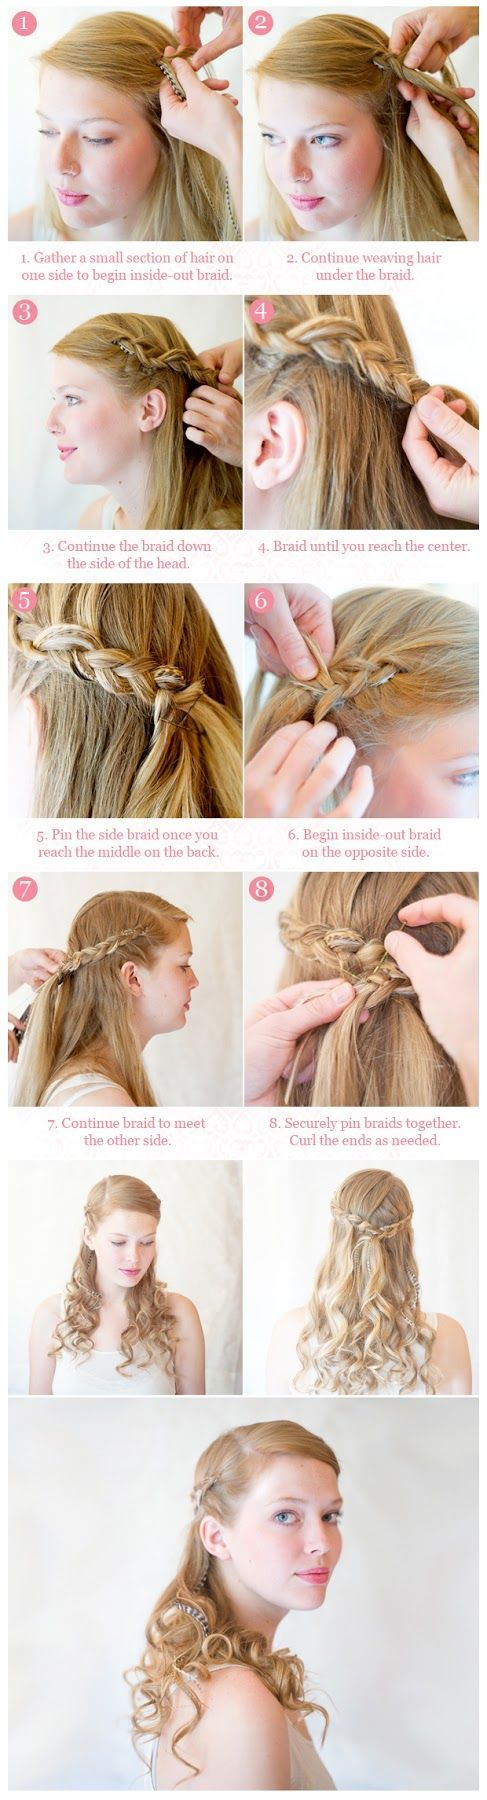 109 best cabelo images on pinterest hairstyle ideas hair ideas 109 best cabelo images on pinterest hairstyle ideas hair ideas and tuto coiffure solutioingenieria Images